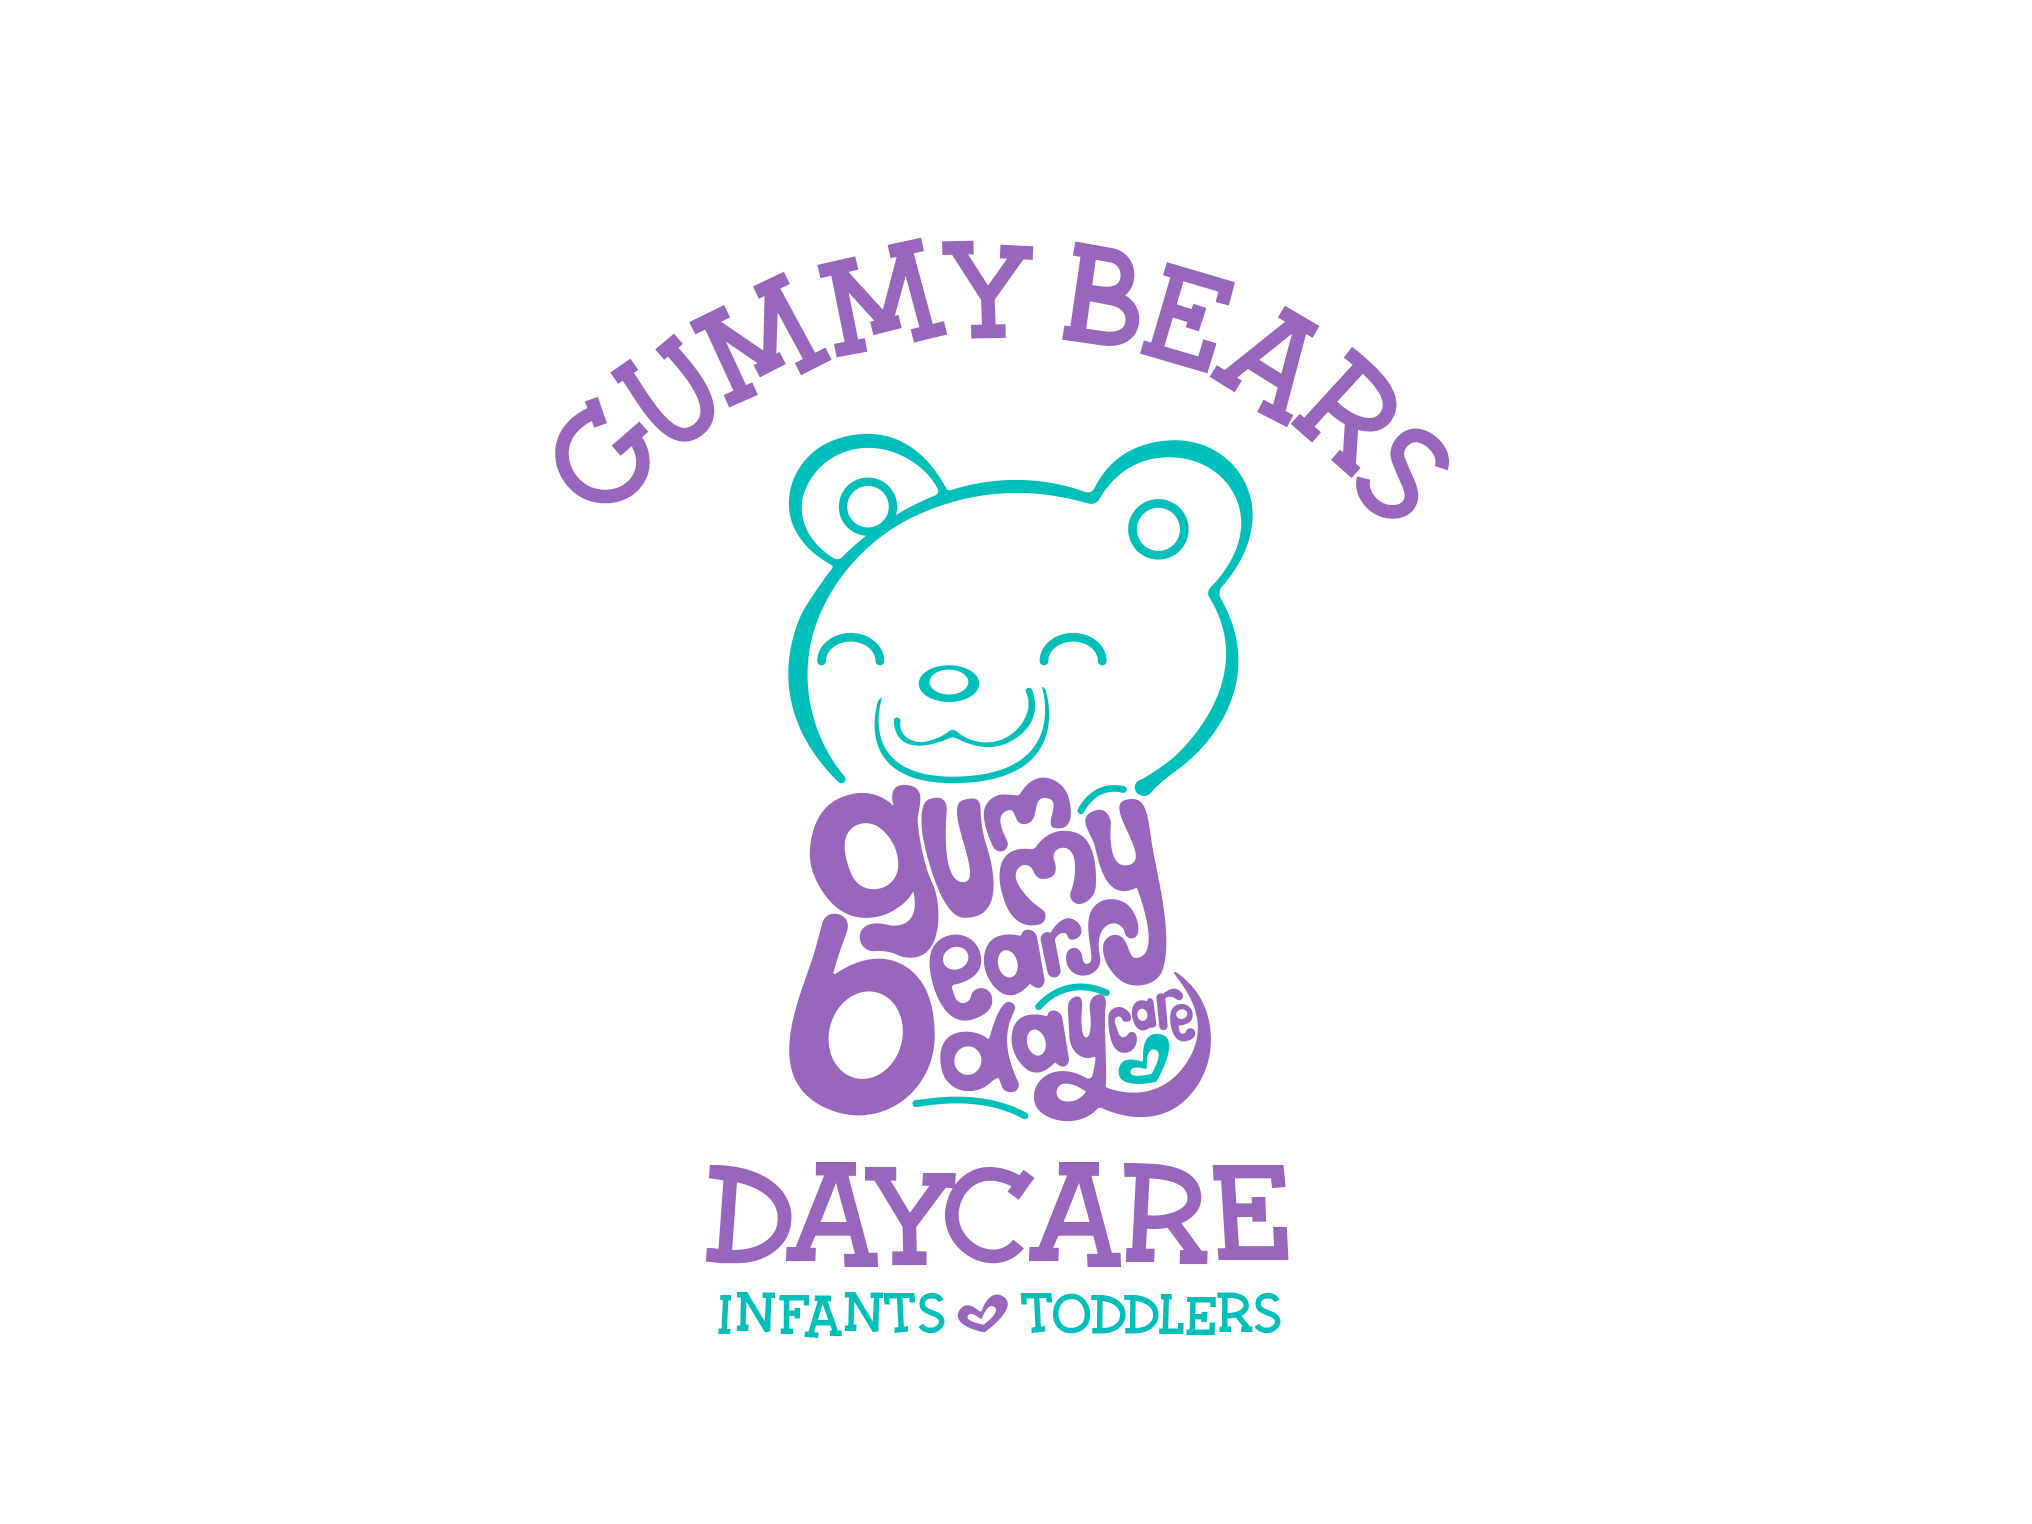 http://www.newmangrace.com/project/gummy-bears-daycare/